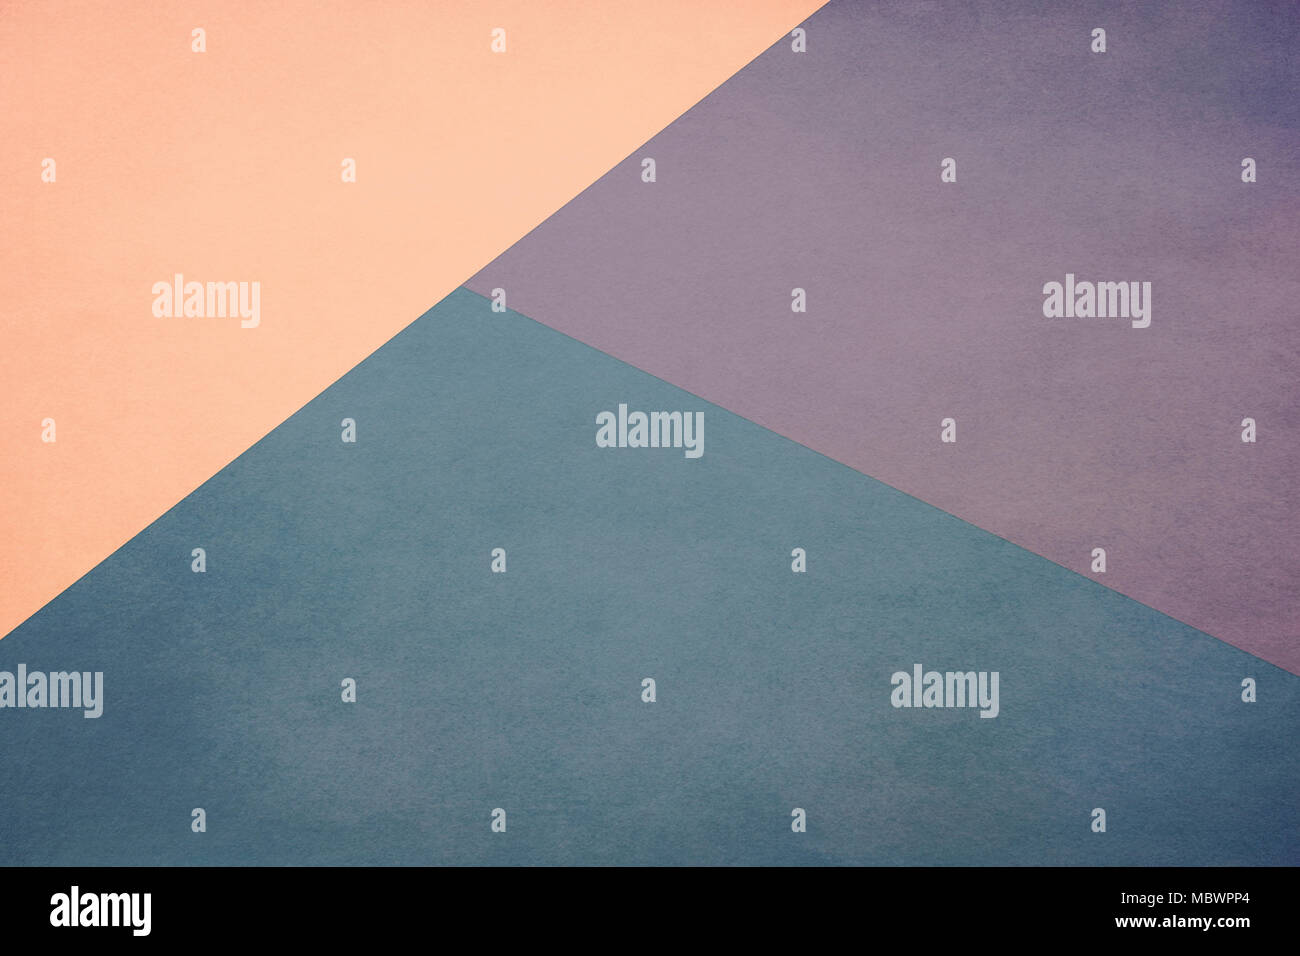 tricolored geometic background perfect for presentation